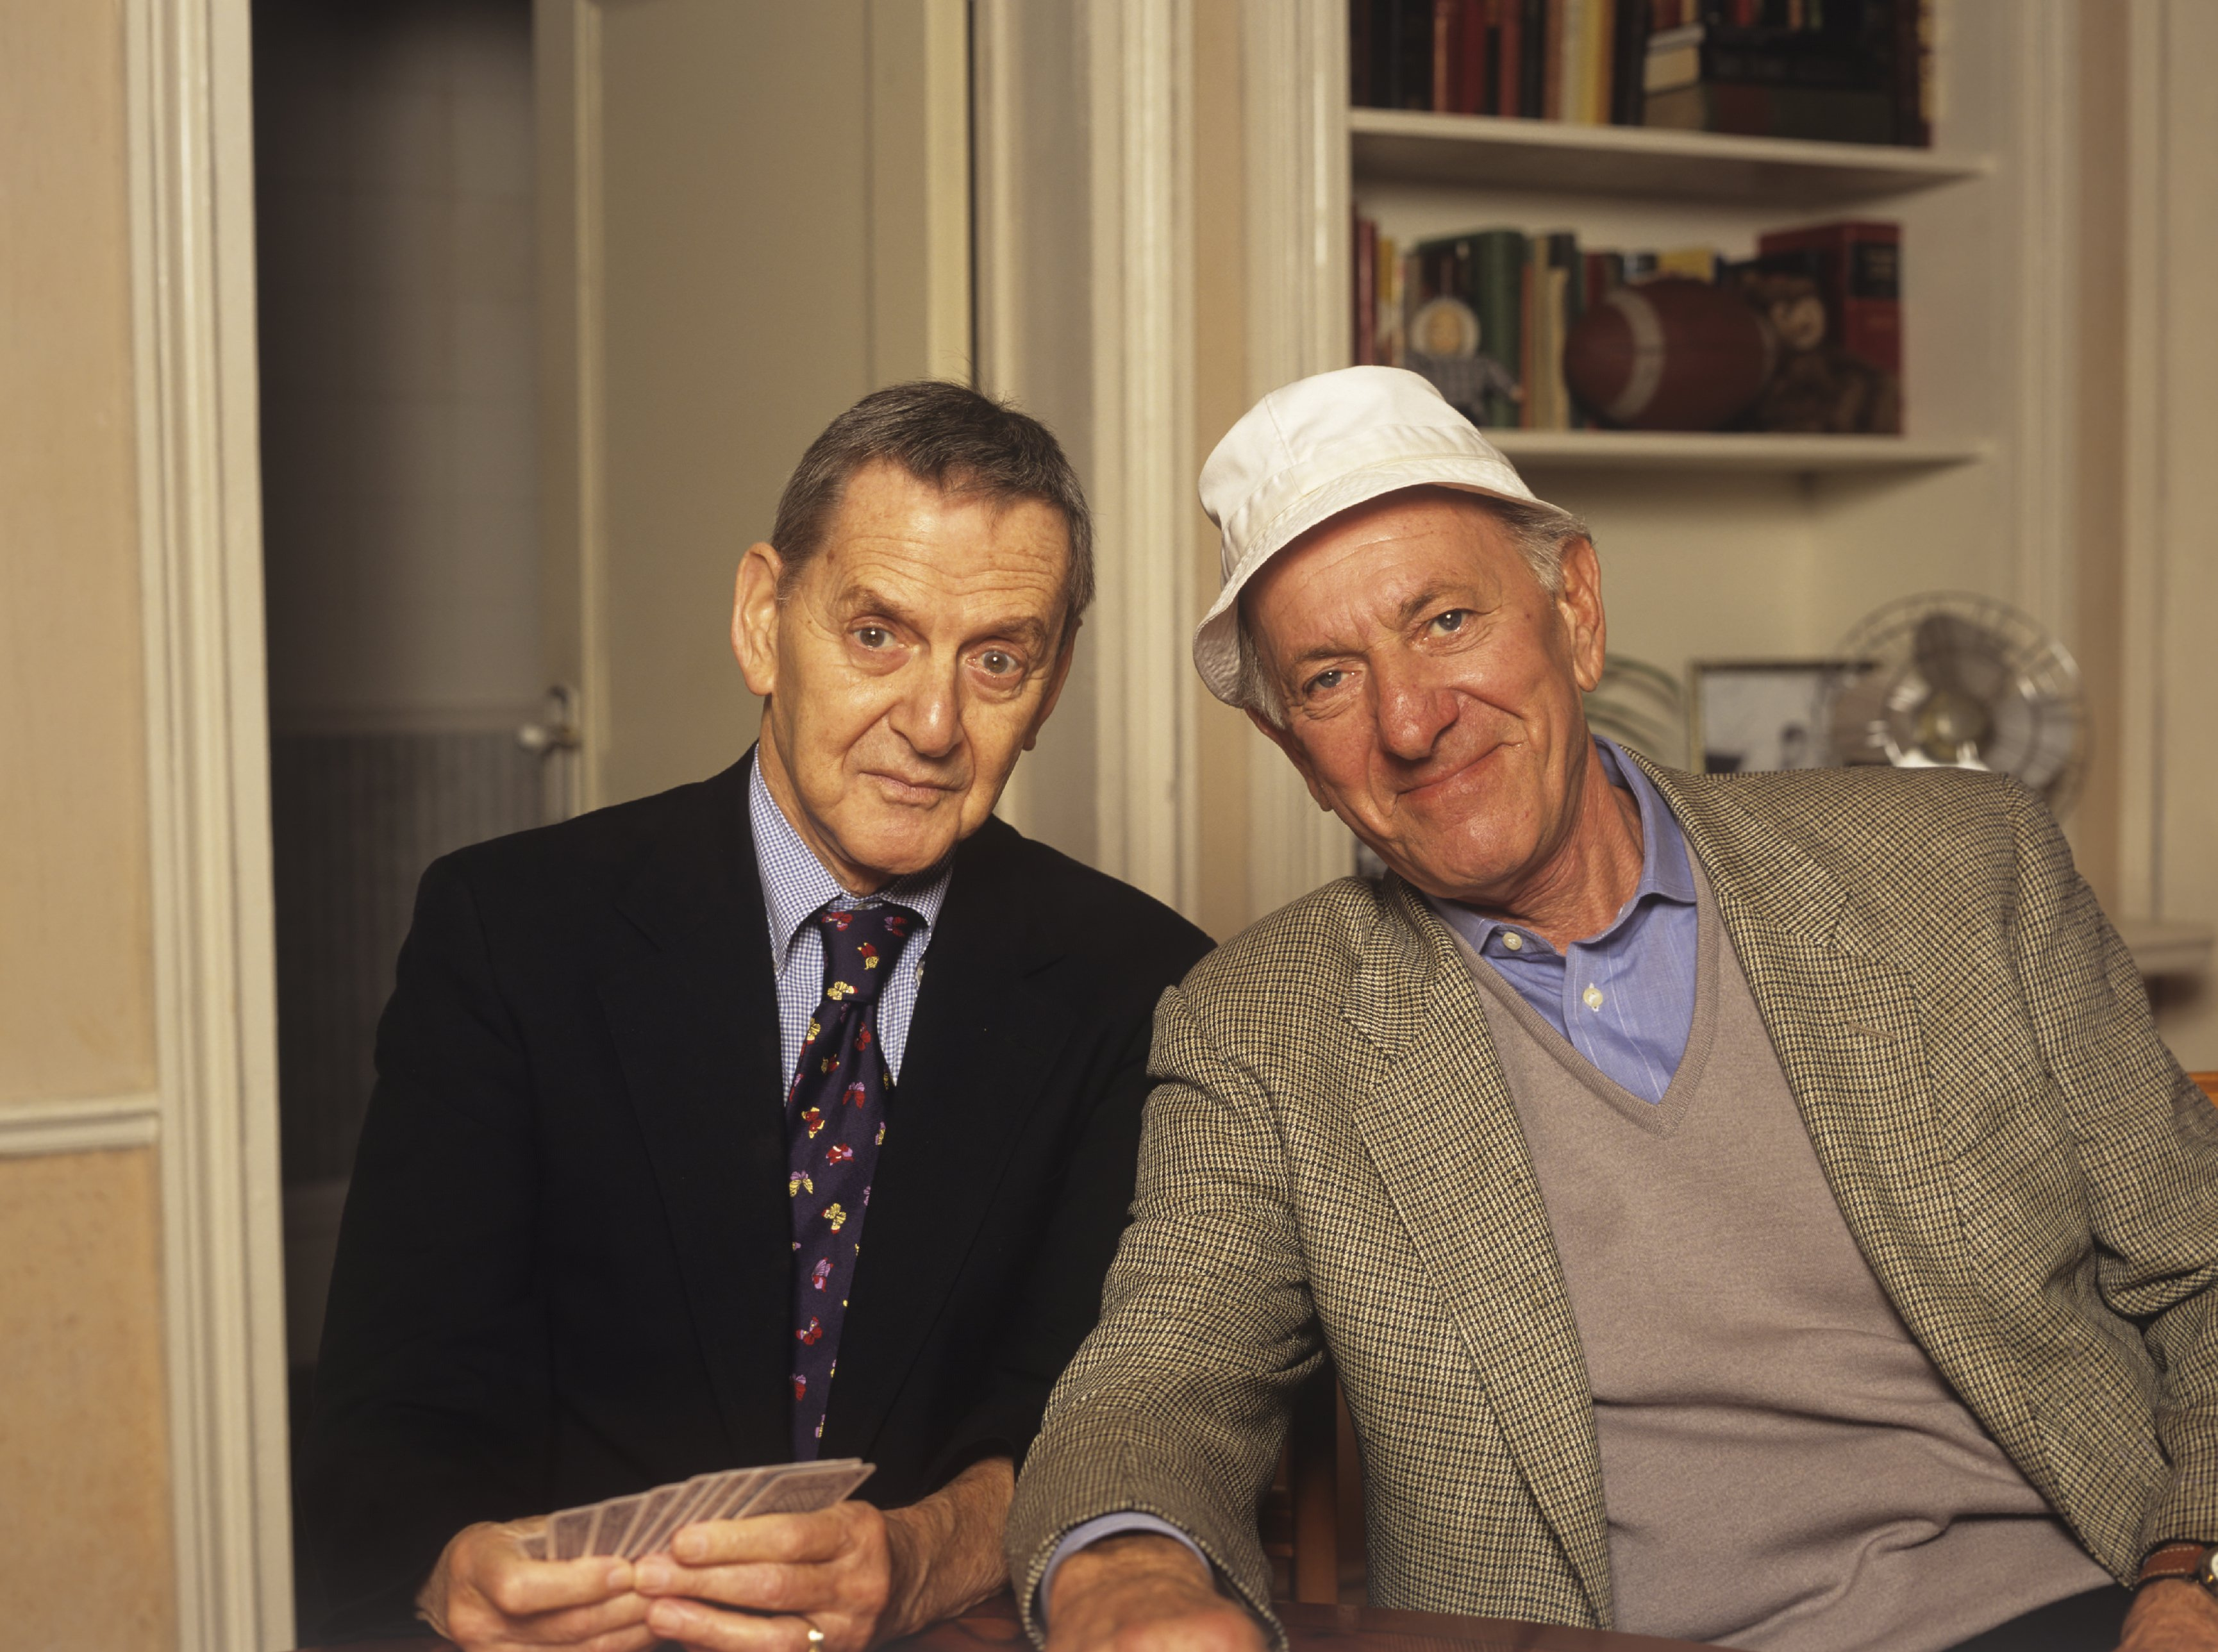 Actors Tony Randall and Jack Klugman 1993   Photo: Getty Images